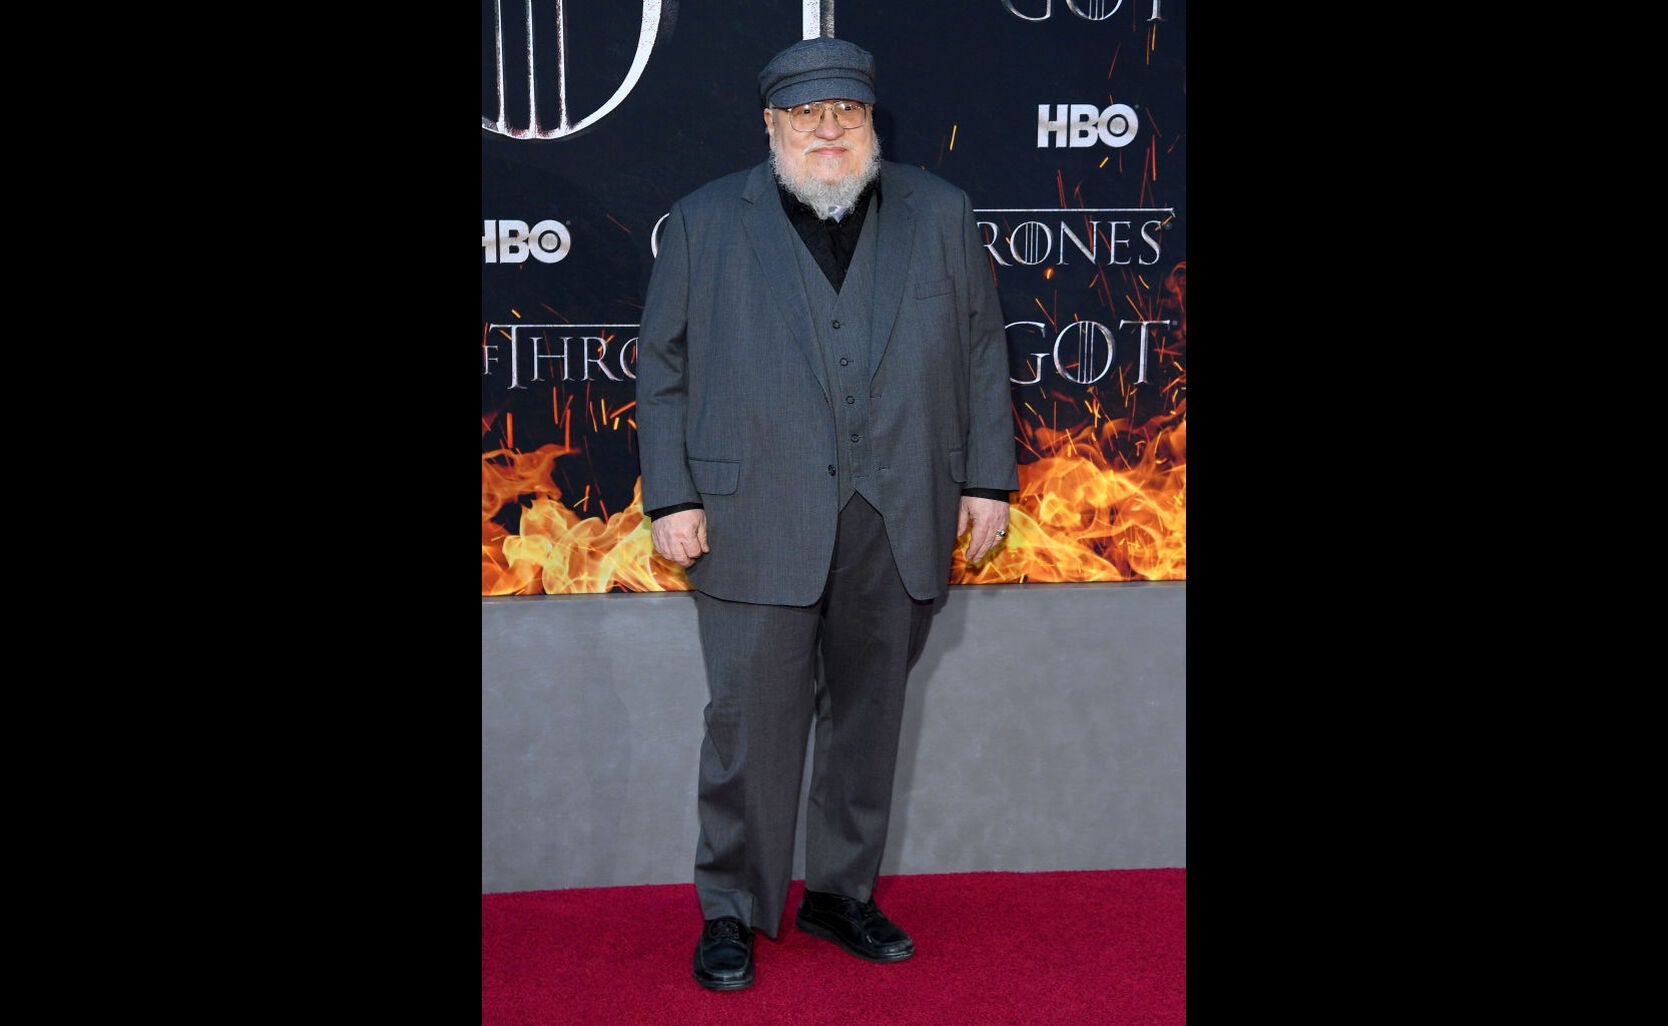 Author George R.R. Martin at premiere of Game of Thrones s8